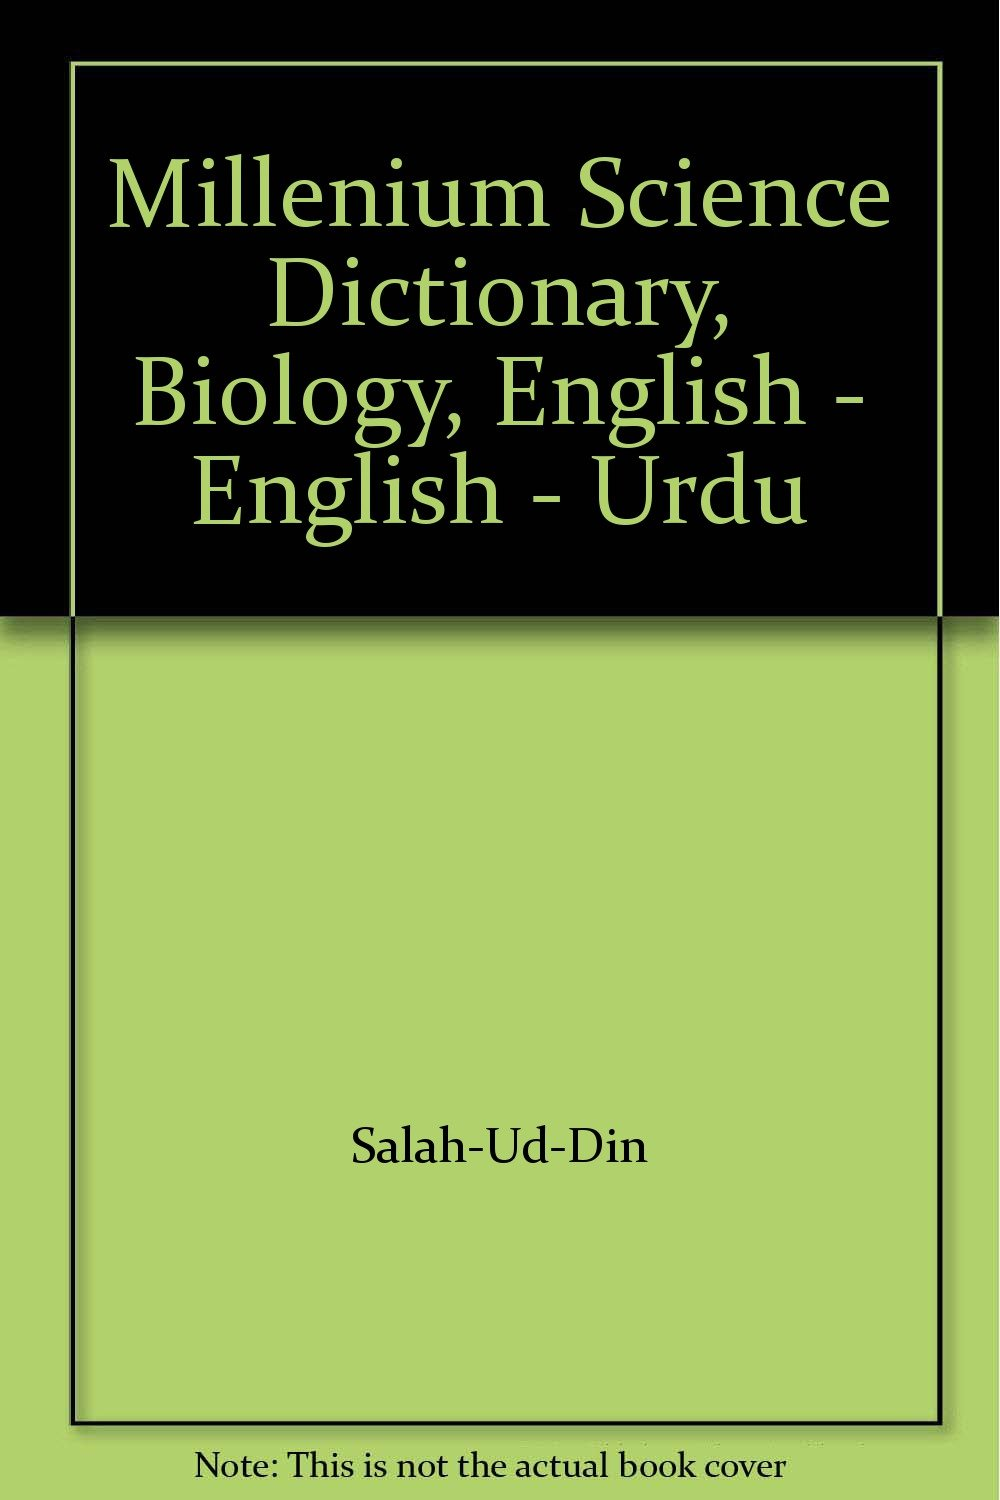 Best scientific dictionary english to urdu free download for pc.